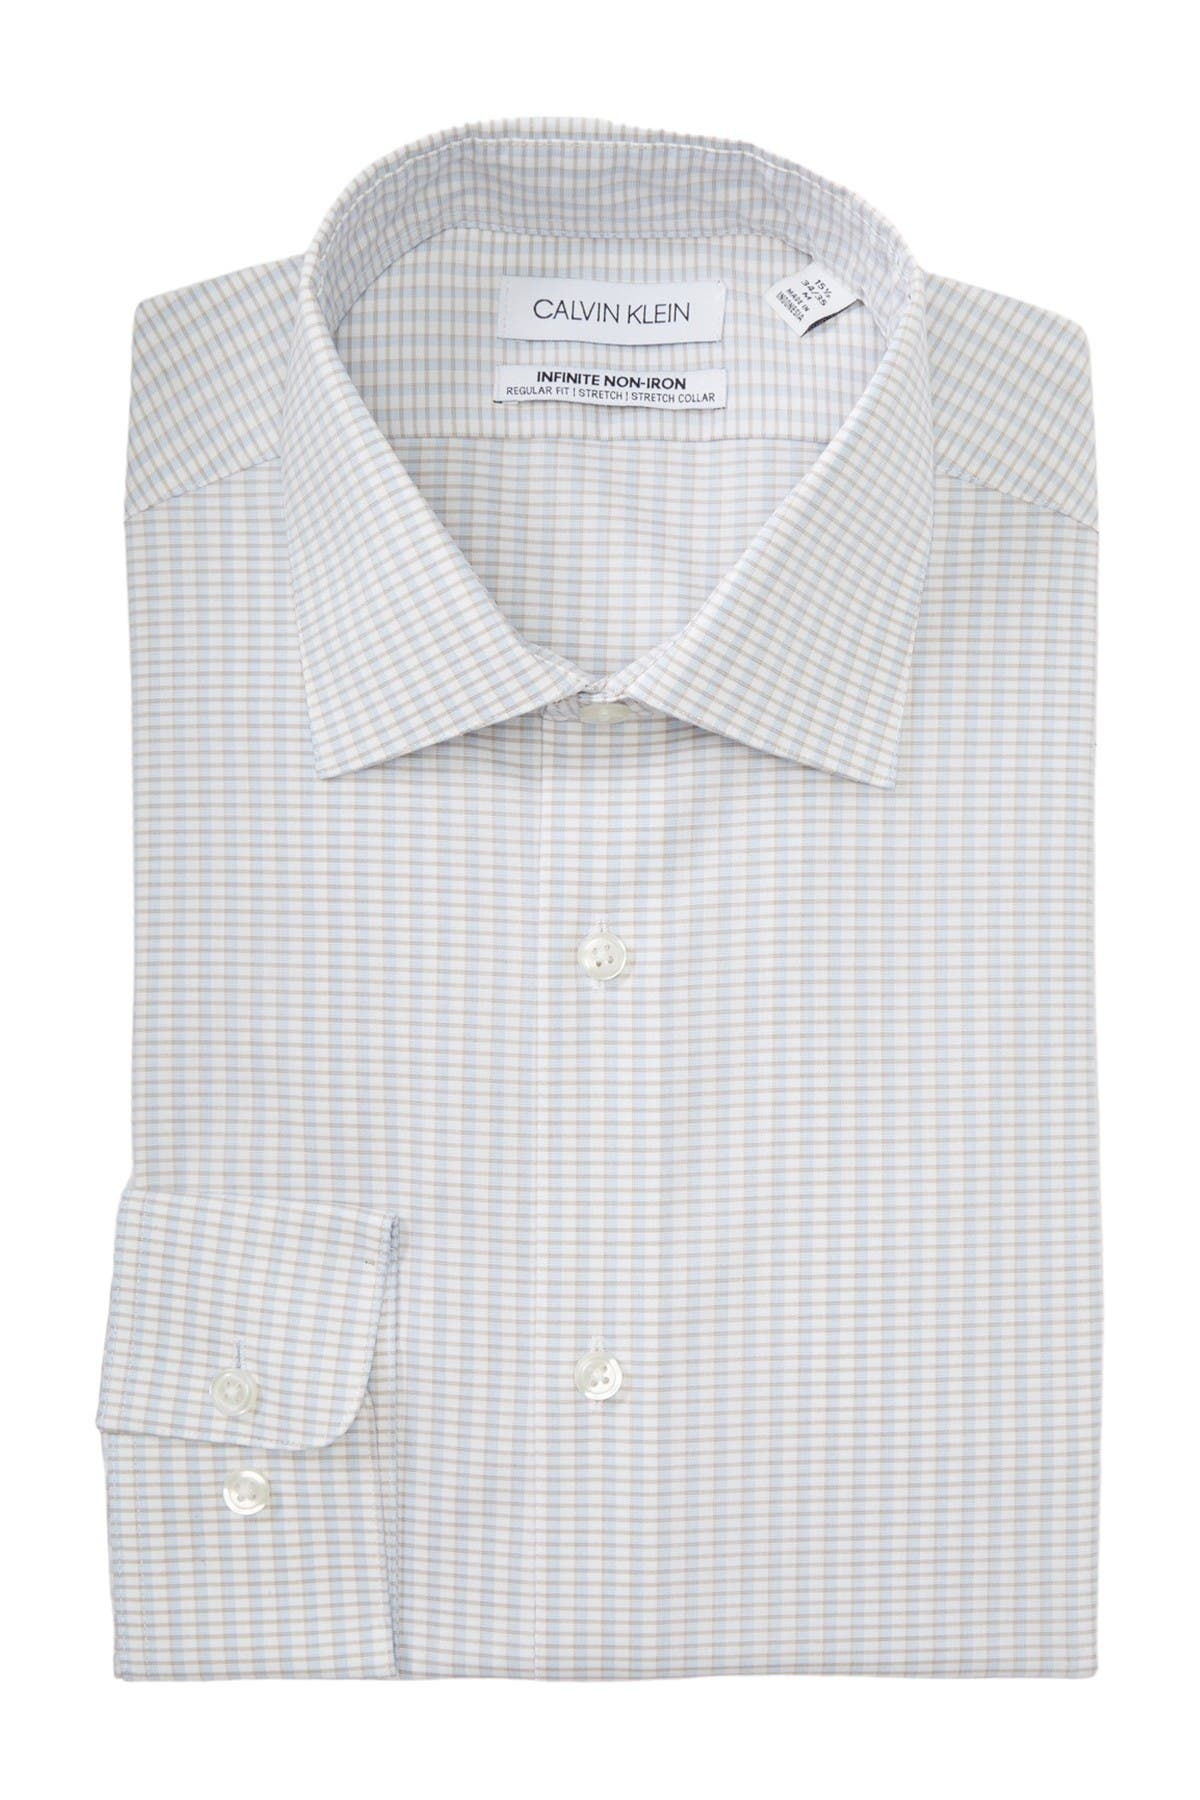 Image of Calvin Klein Grid Print Slim Fit Dress Shirt